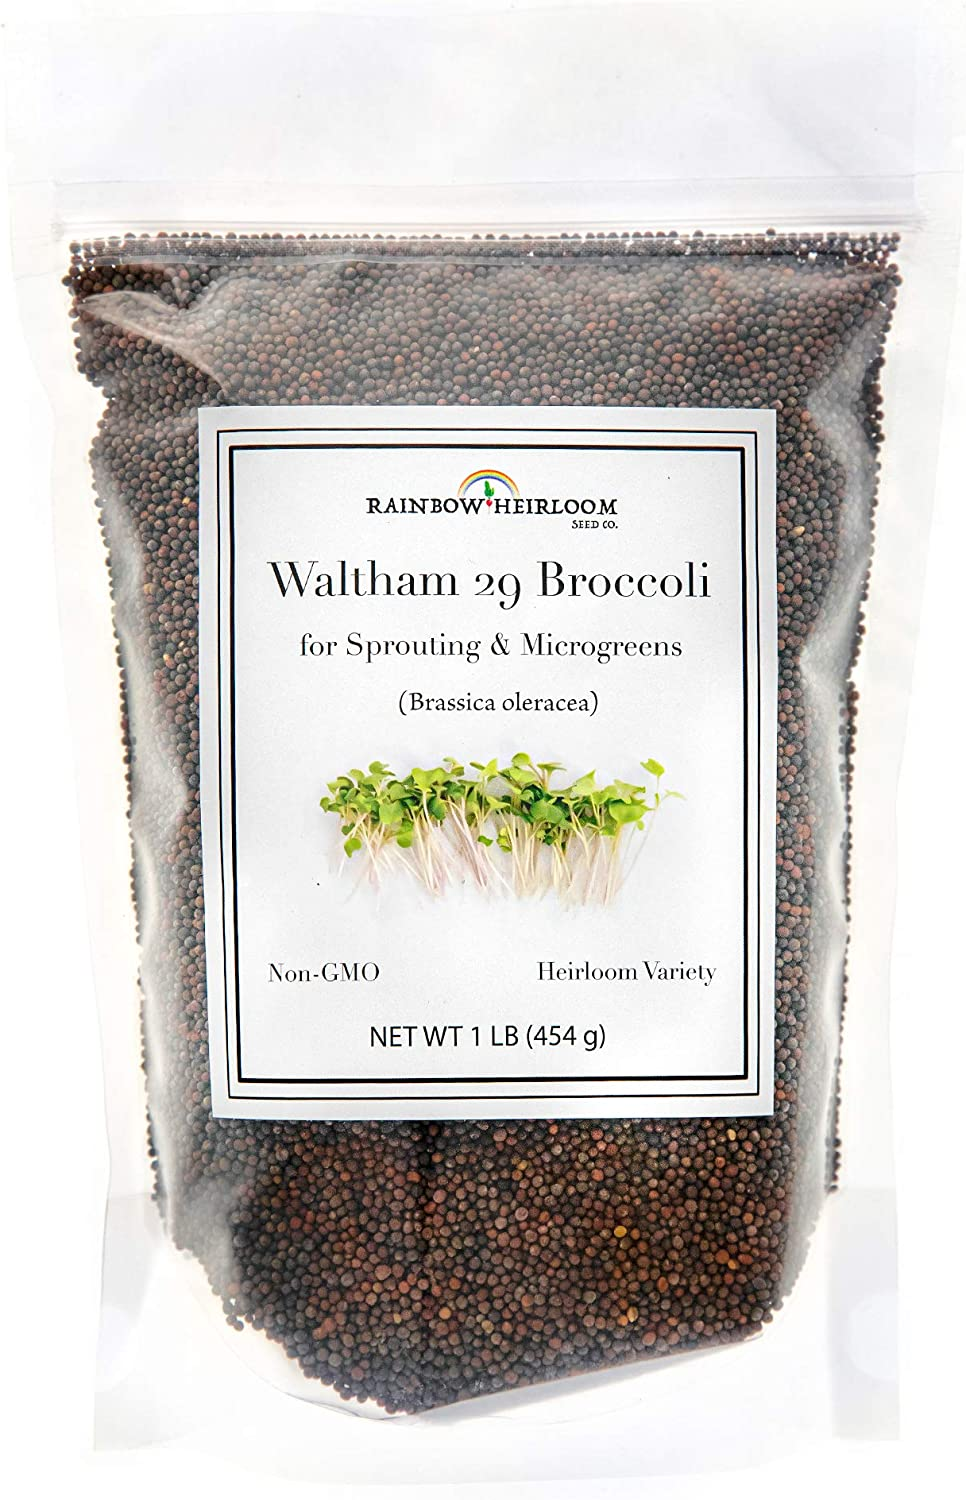 Growing Broccoli From Seed